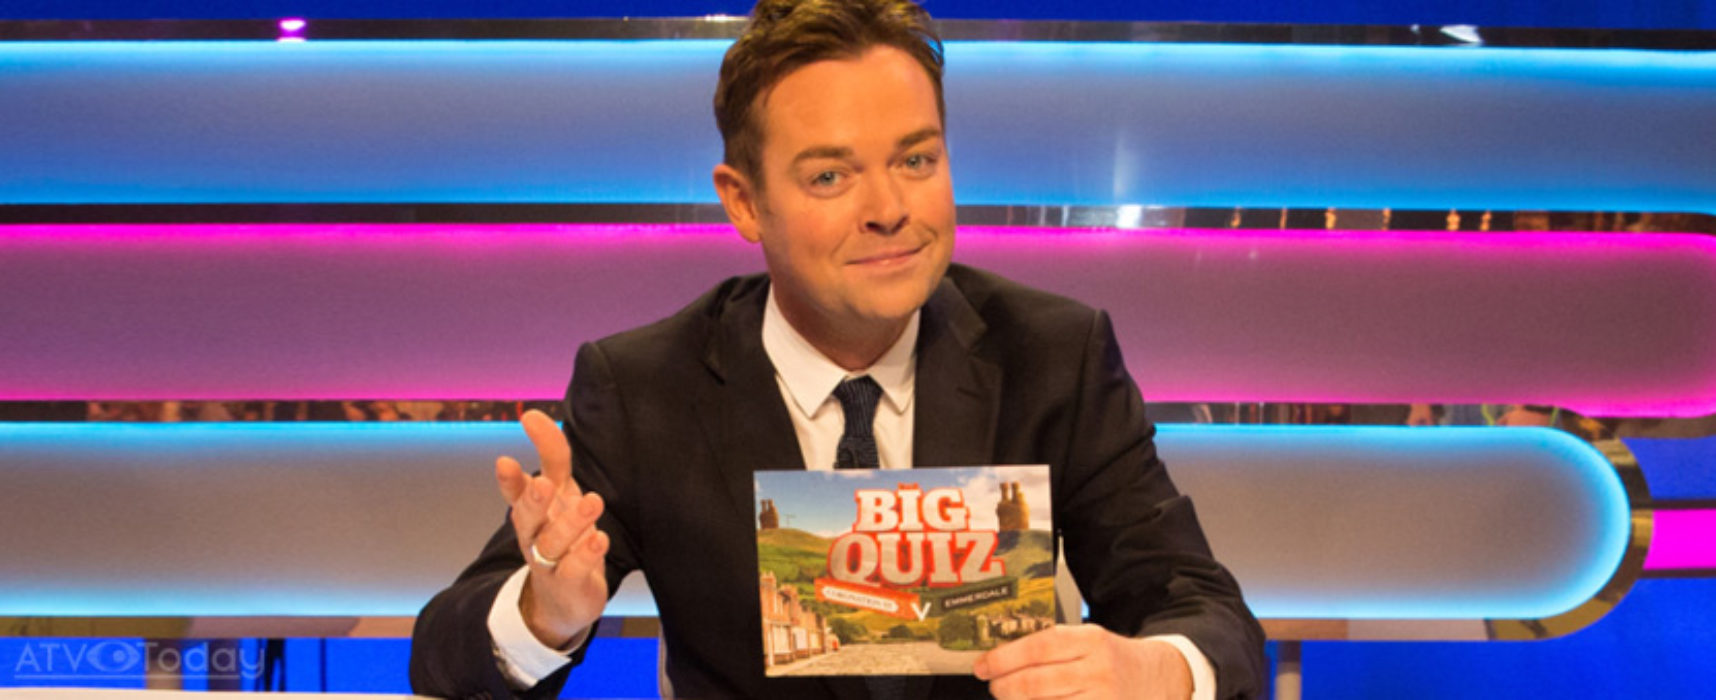 Stephen Mulhern turns pence into pounds for ITV